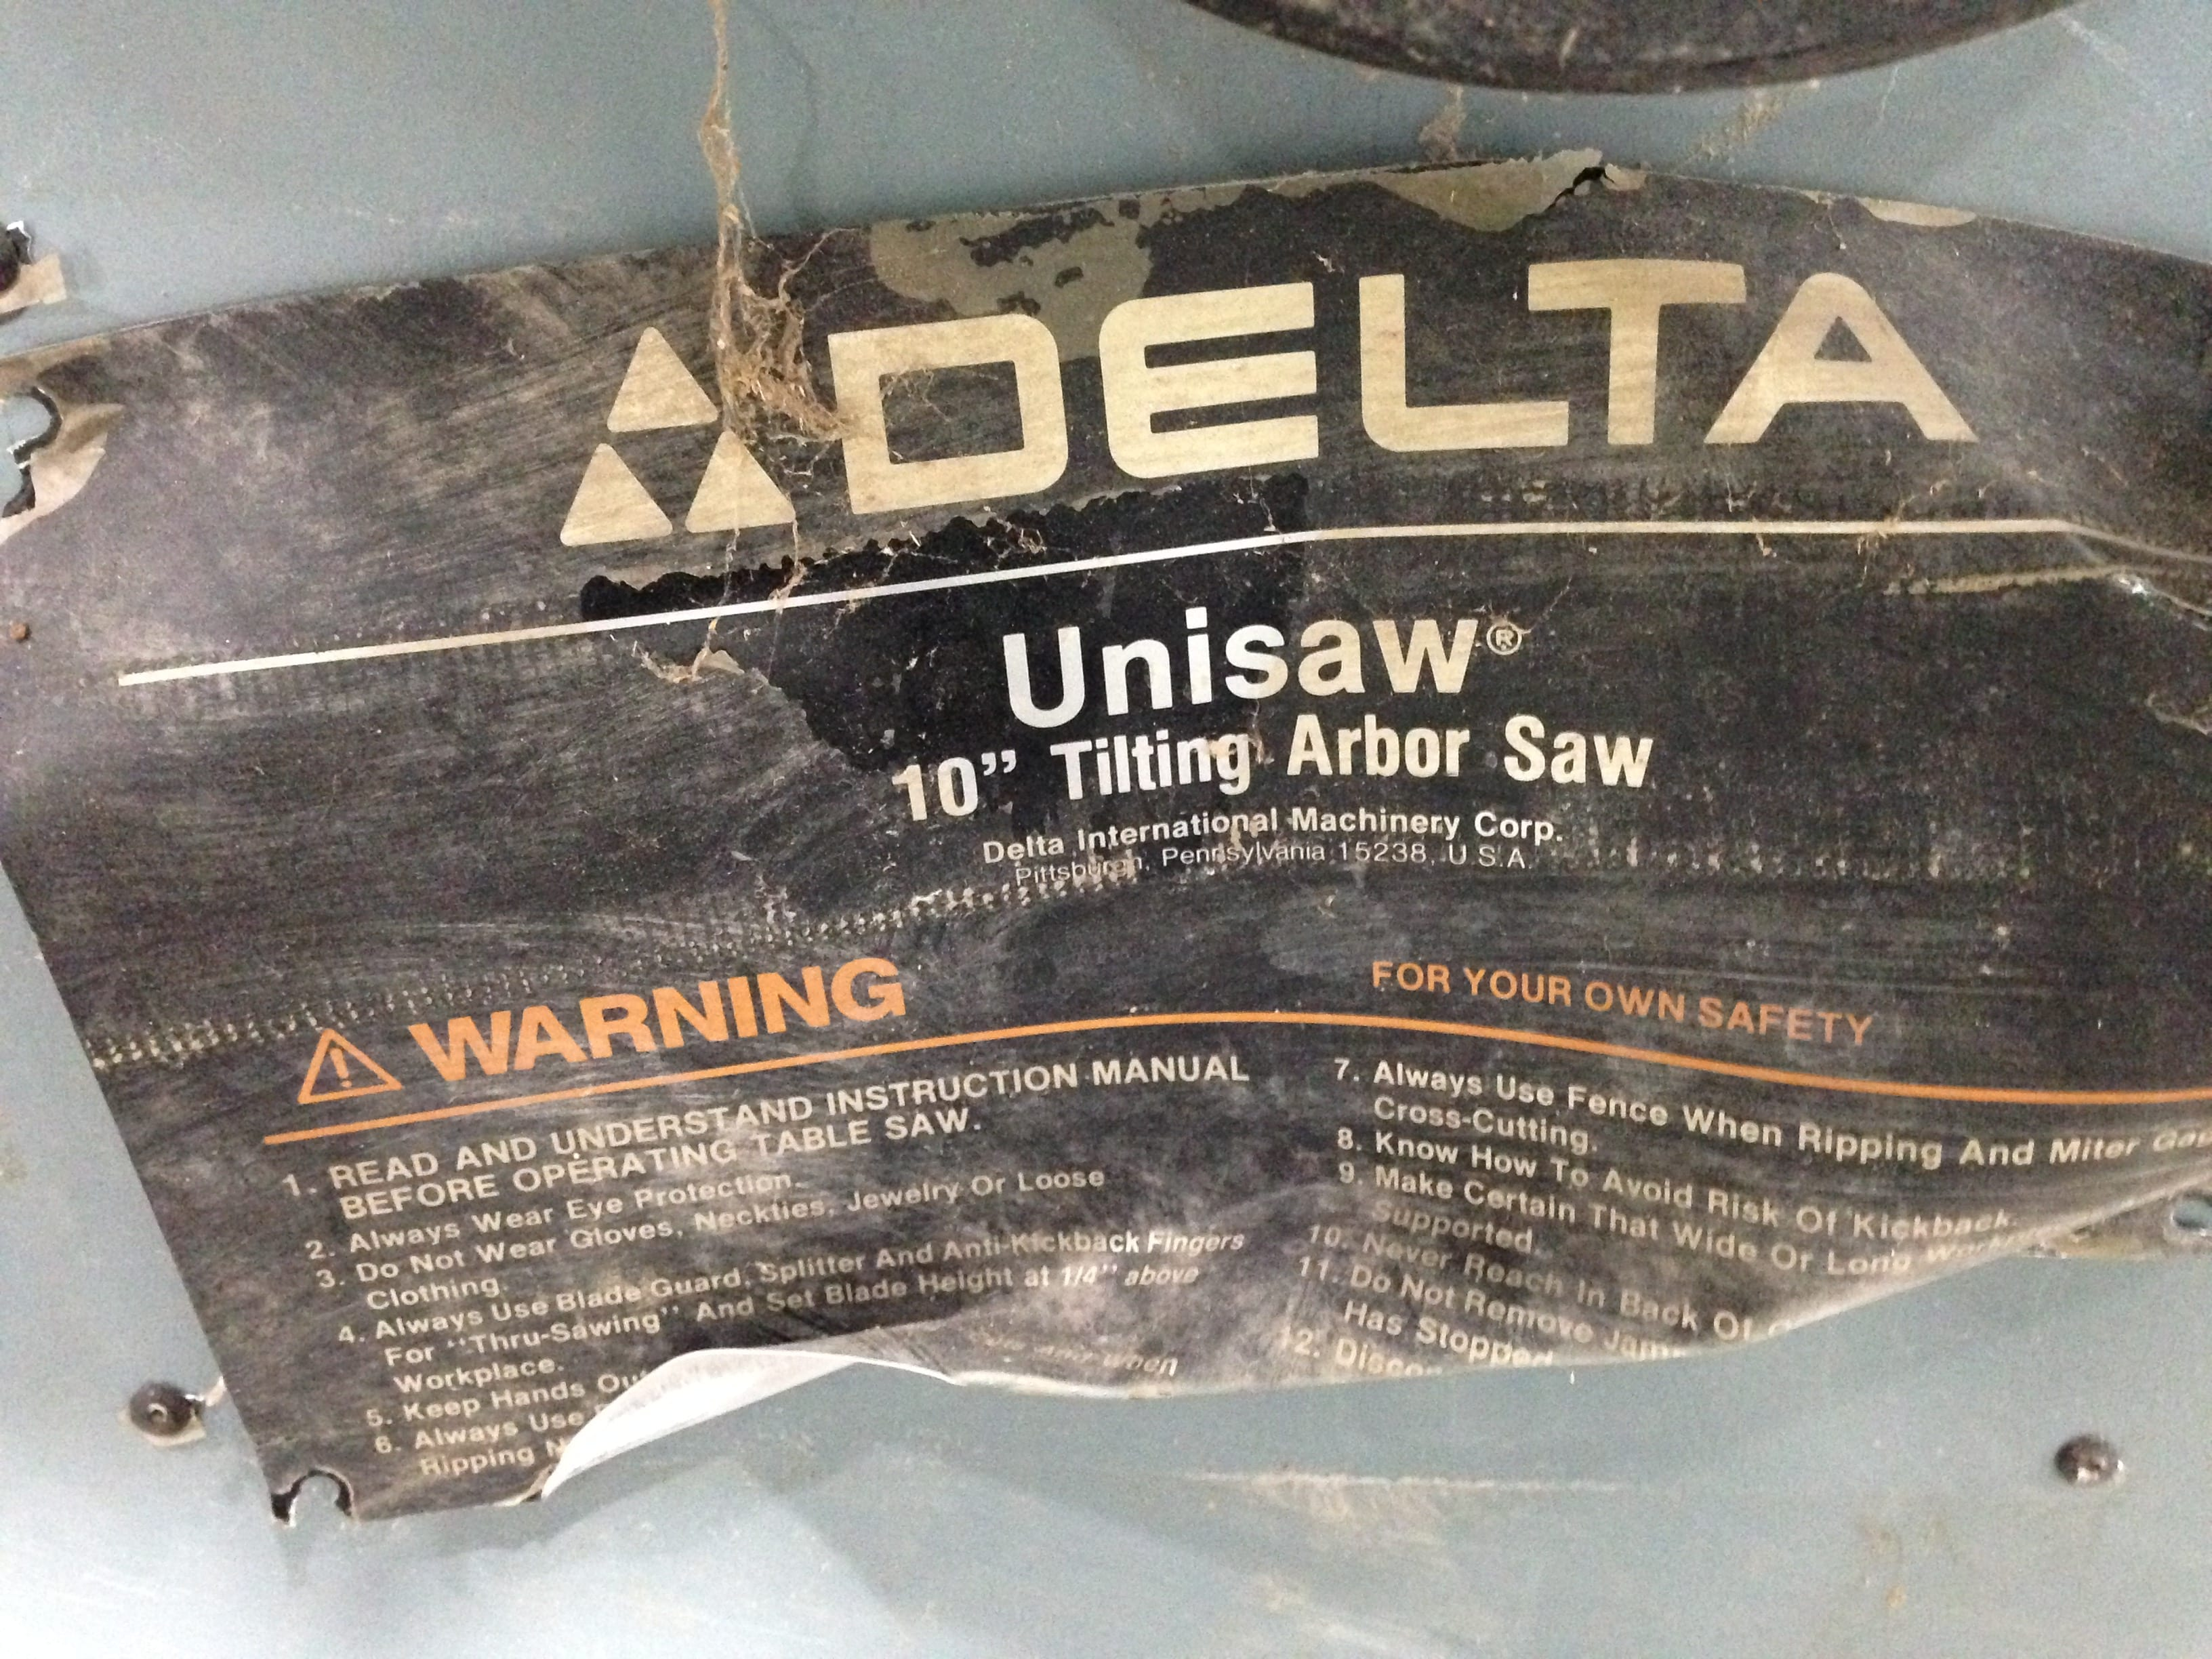 Delta Unisaw 10″ Tilting Arbor Table Saw 3475RPM 3HP 3PH w/ 36″ X 27″ Table